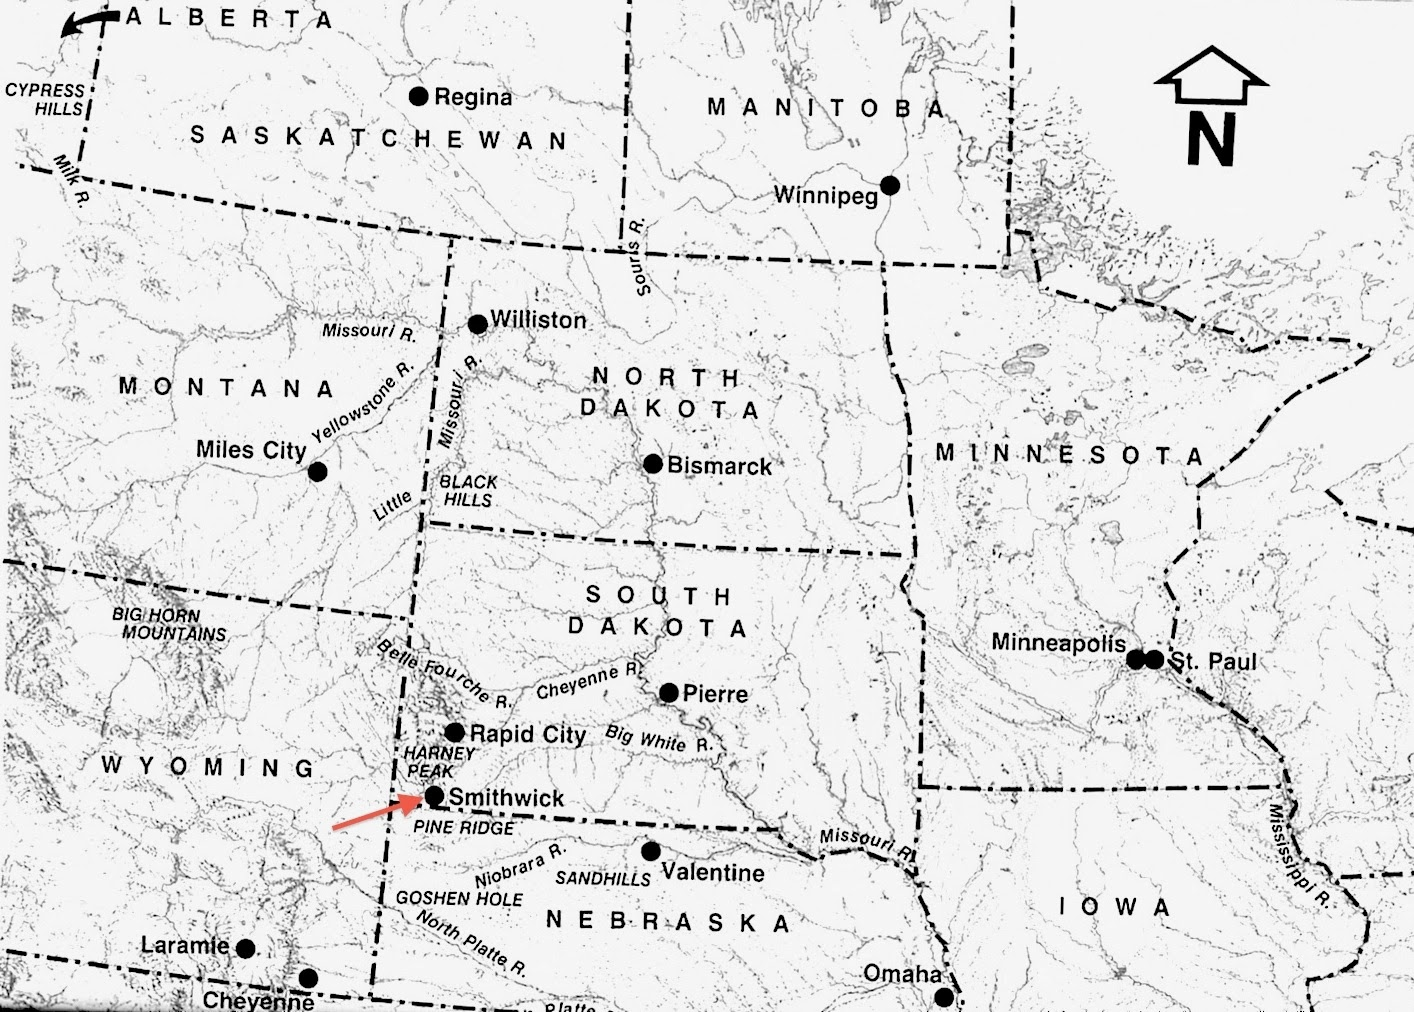 northern great plains barr s ranch was near smithwick from jewels of the plains click image to view  [ 1414 x 1012 Pixel ]